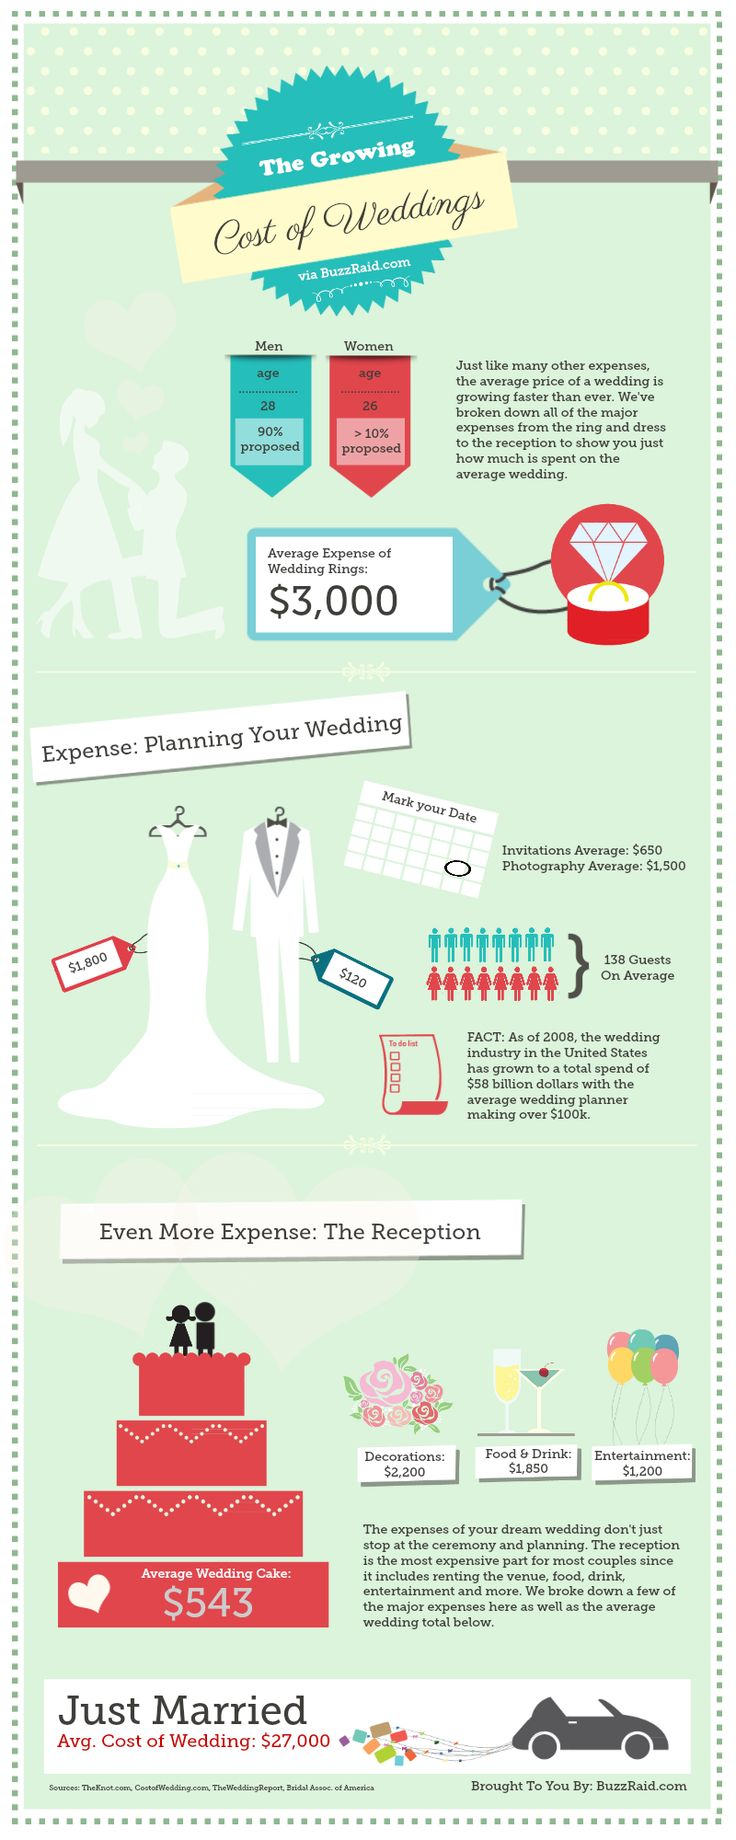 The Growing Cost Of Weddings [INFOGRAPHIC] #growing #cost #weddings